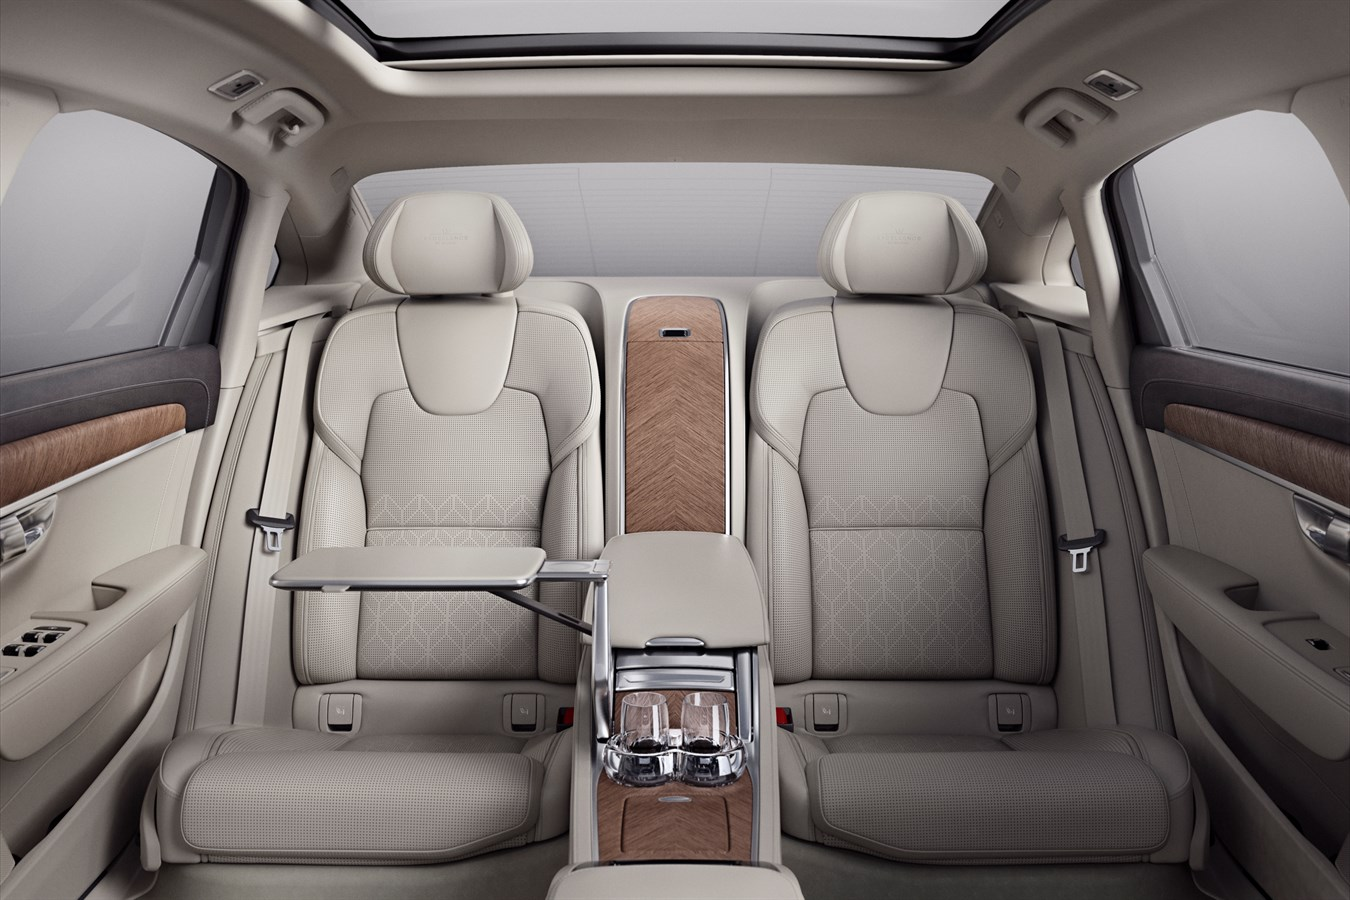 Volvo Cars Unveils New Version Of The S90 Sedan And Top Of The Line S90 Excellence In Shanghai Marking A New Era For Car Making In China Volvo Cars Global Media Newsroom